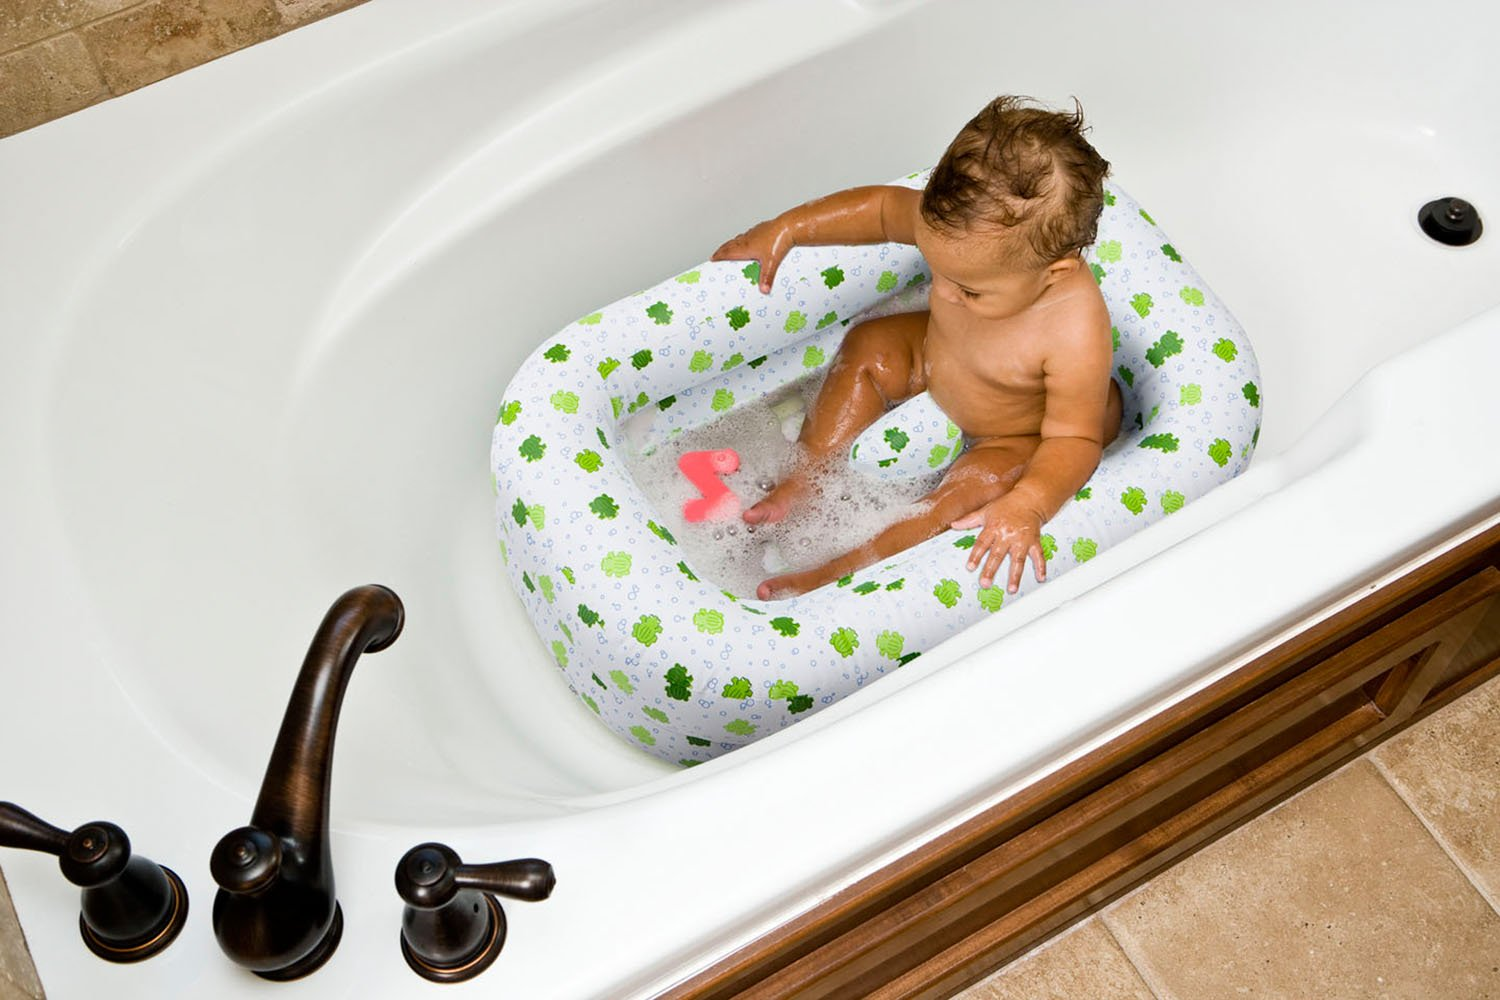 Blow Up Baby Bath (Age limit: 6-12 months) Image